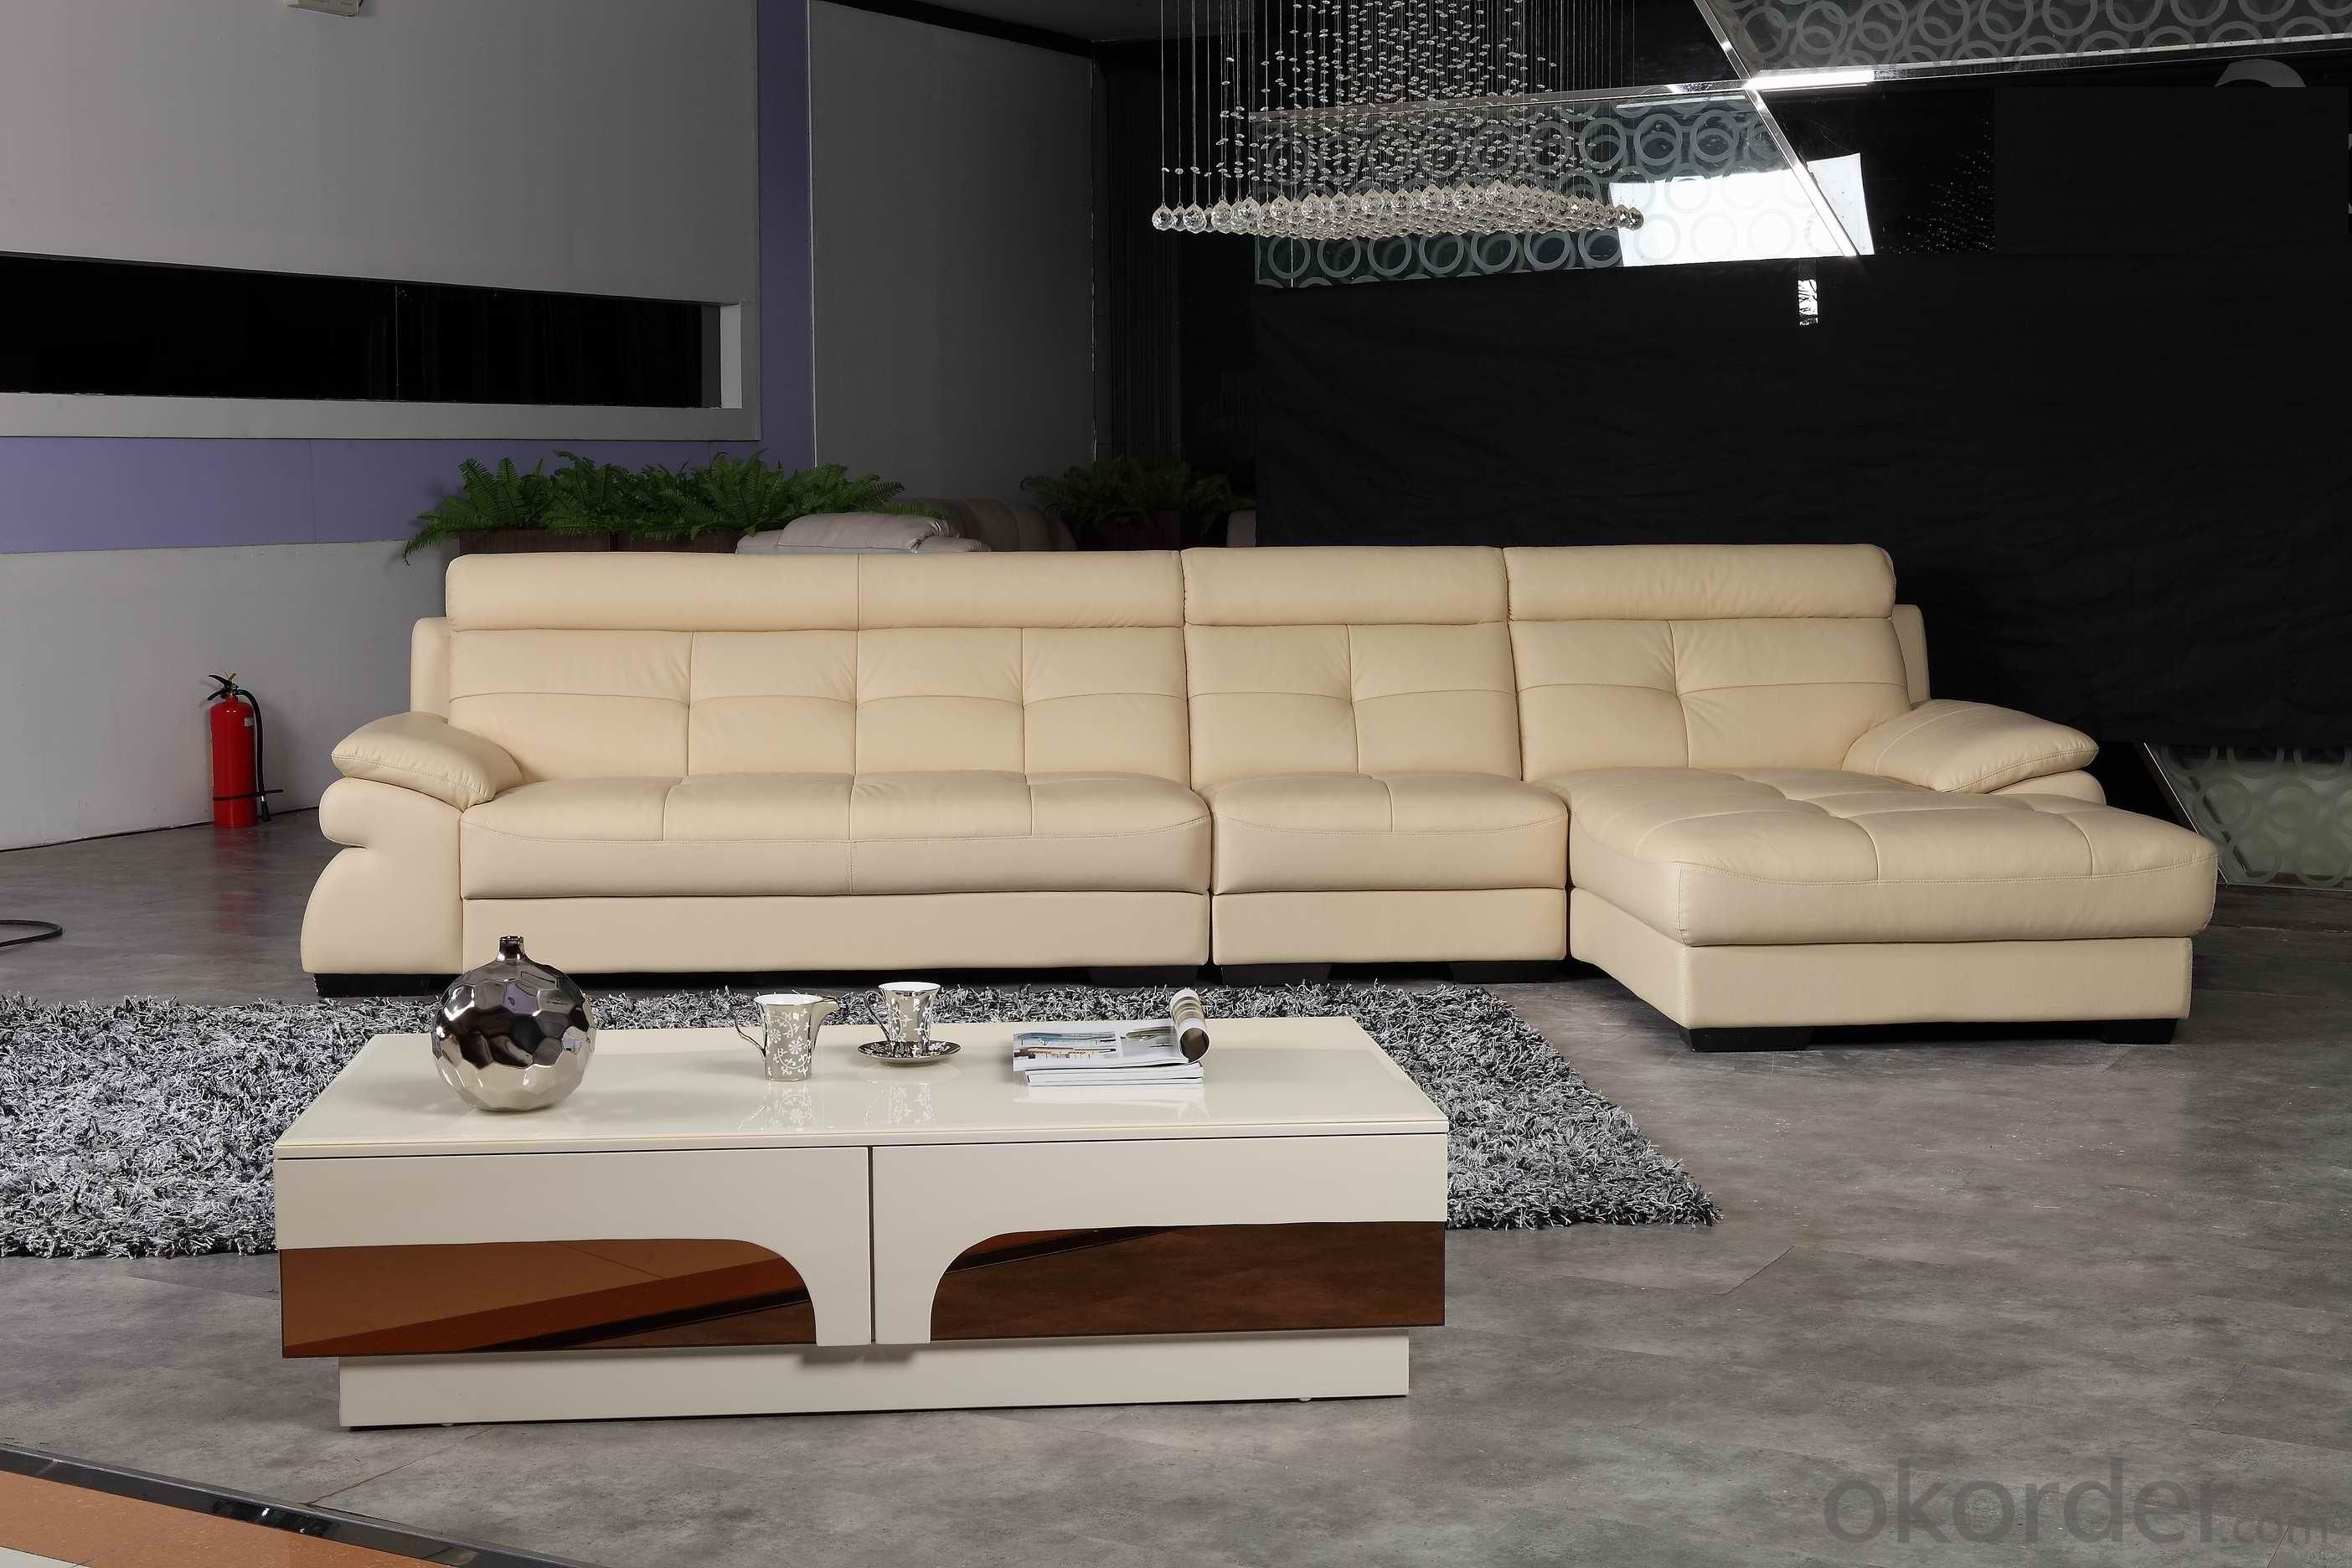 Leather sofa model-17